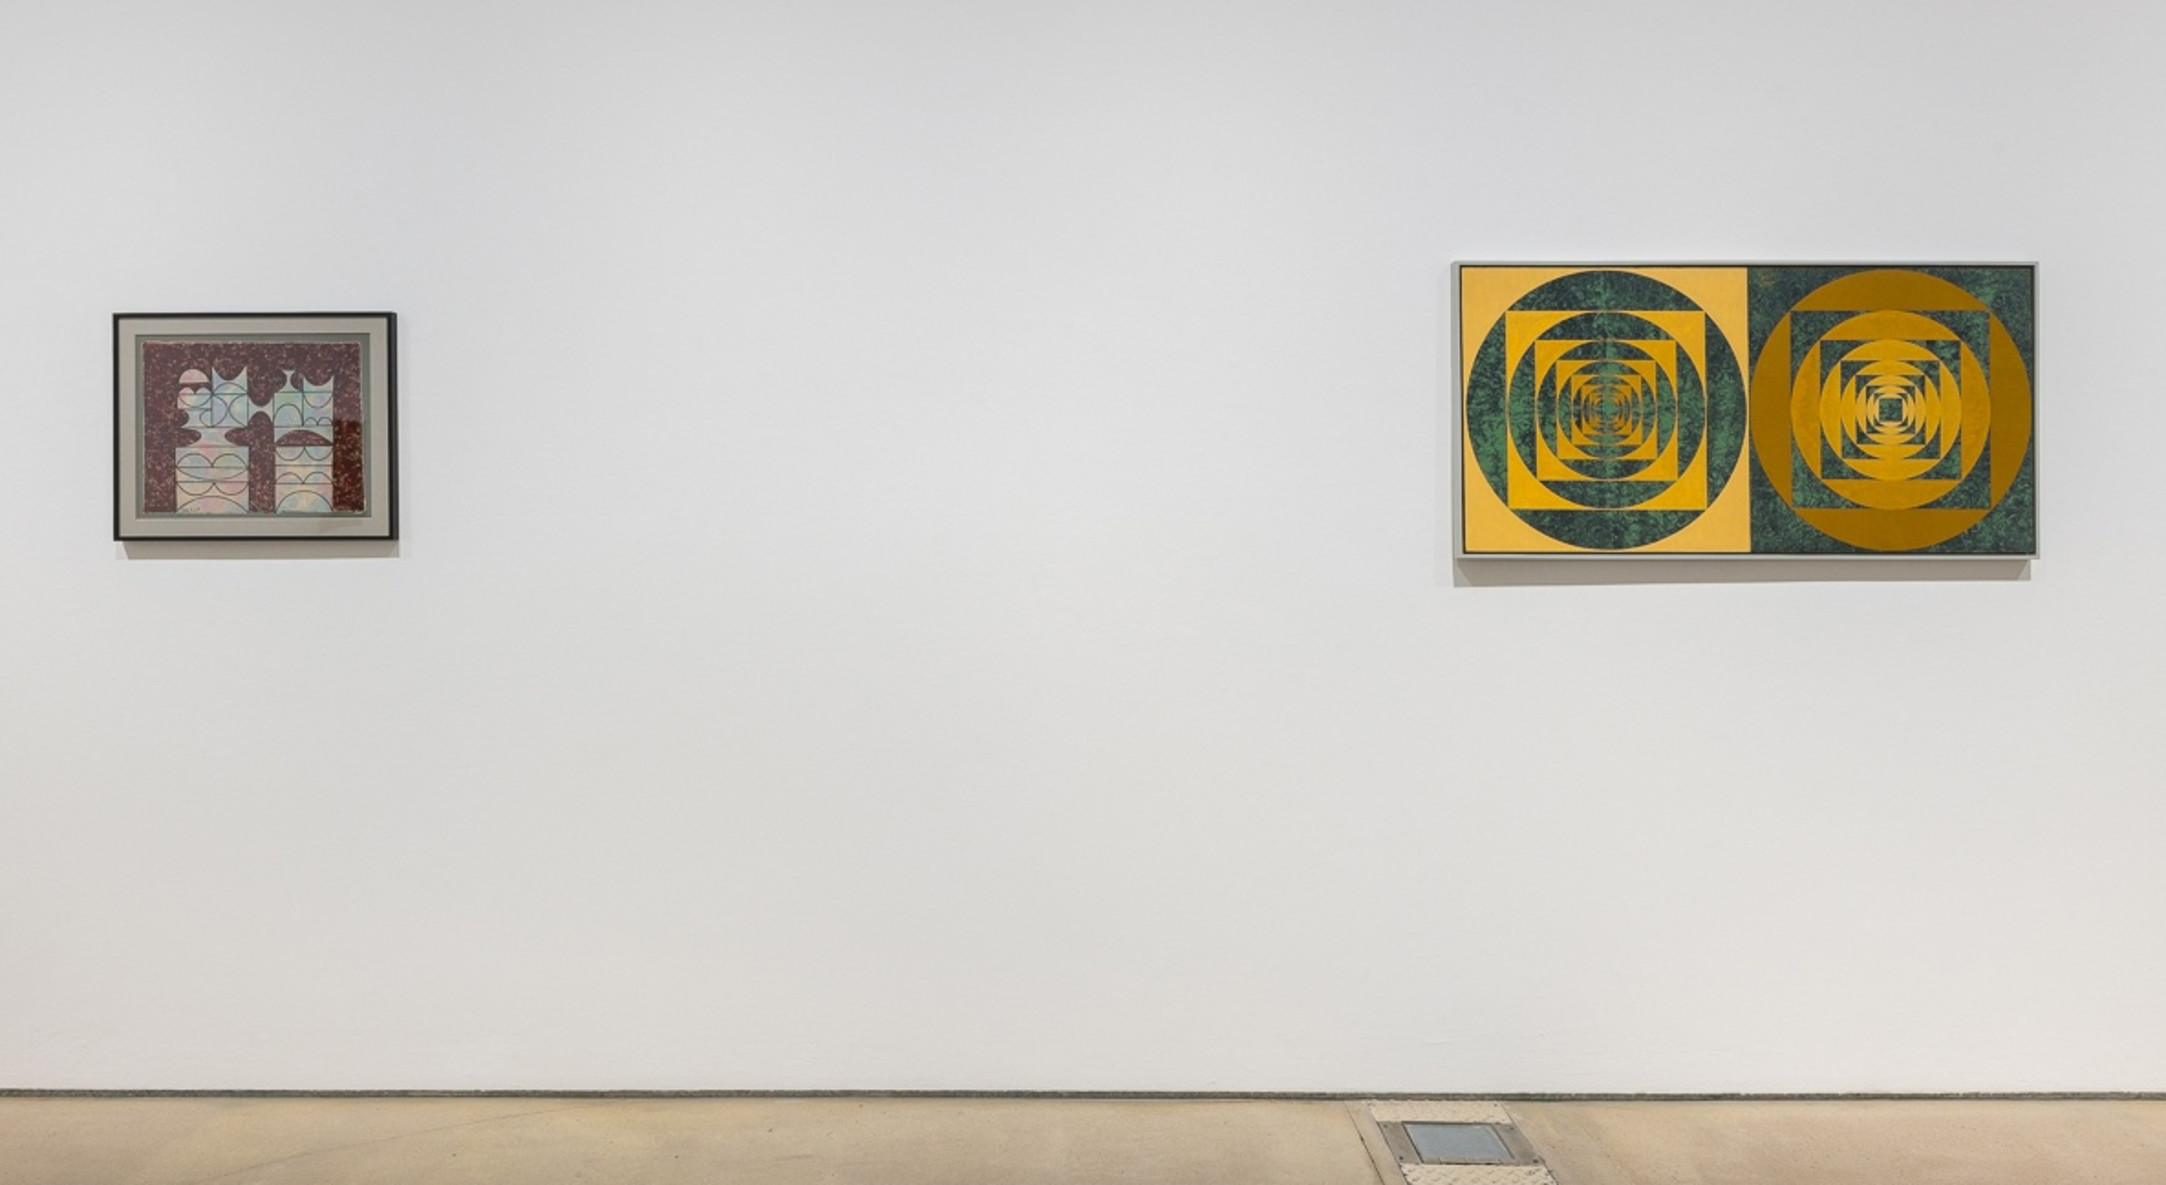 Installation view of Anwar Jalal Schemza, Paintings from the 1960s, at Hales London, 2018